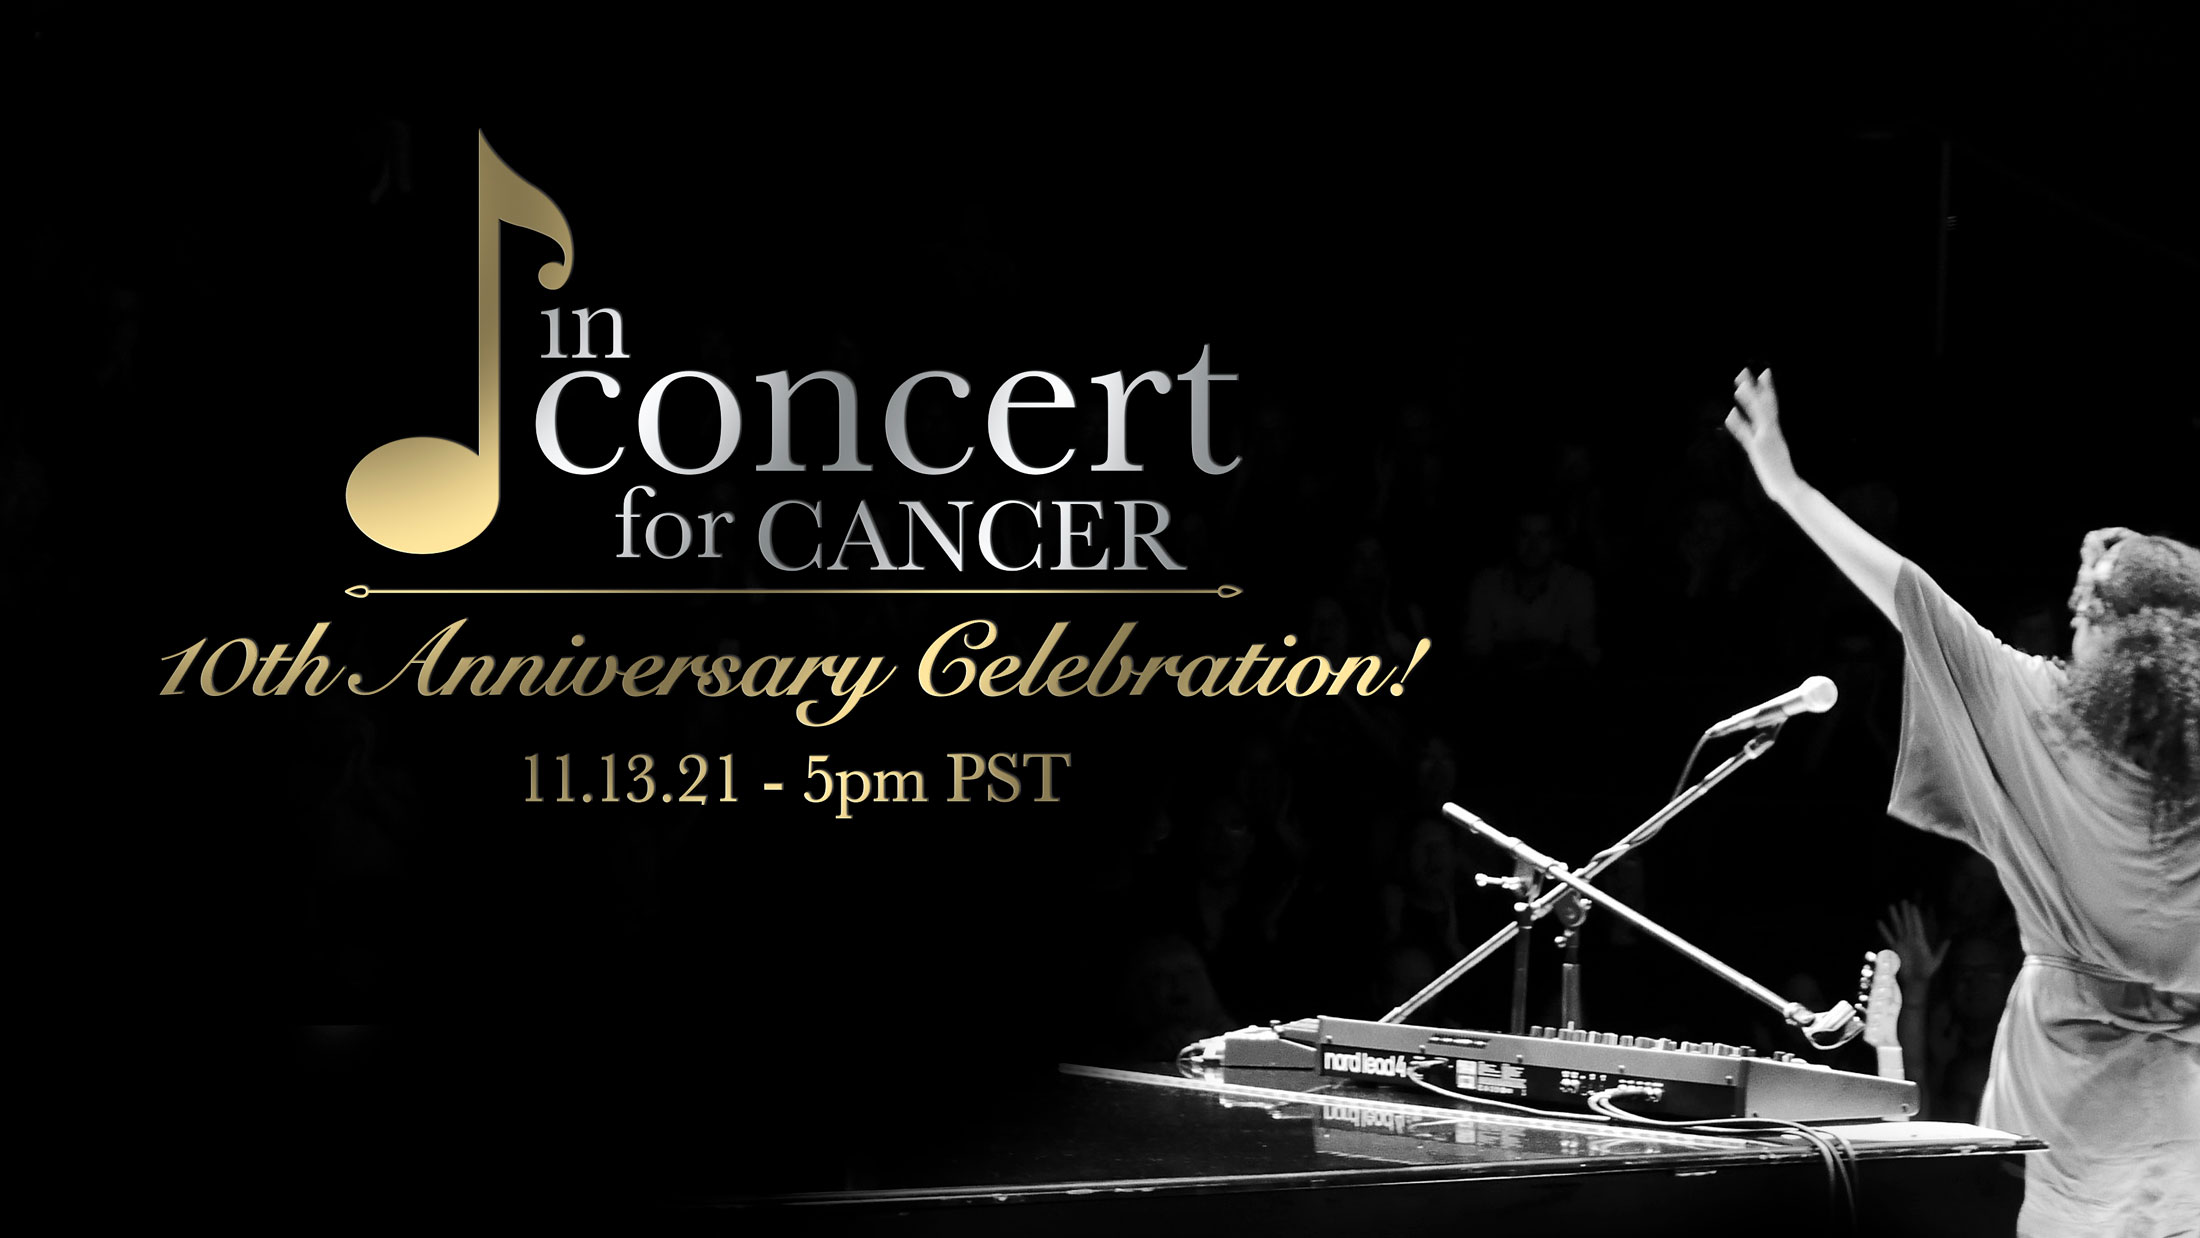 In Concert for Cancer 10th Anniversary Celebration